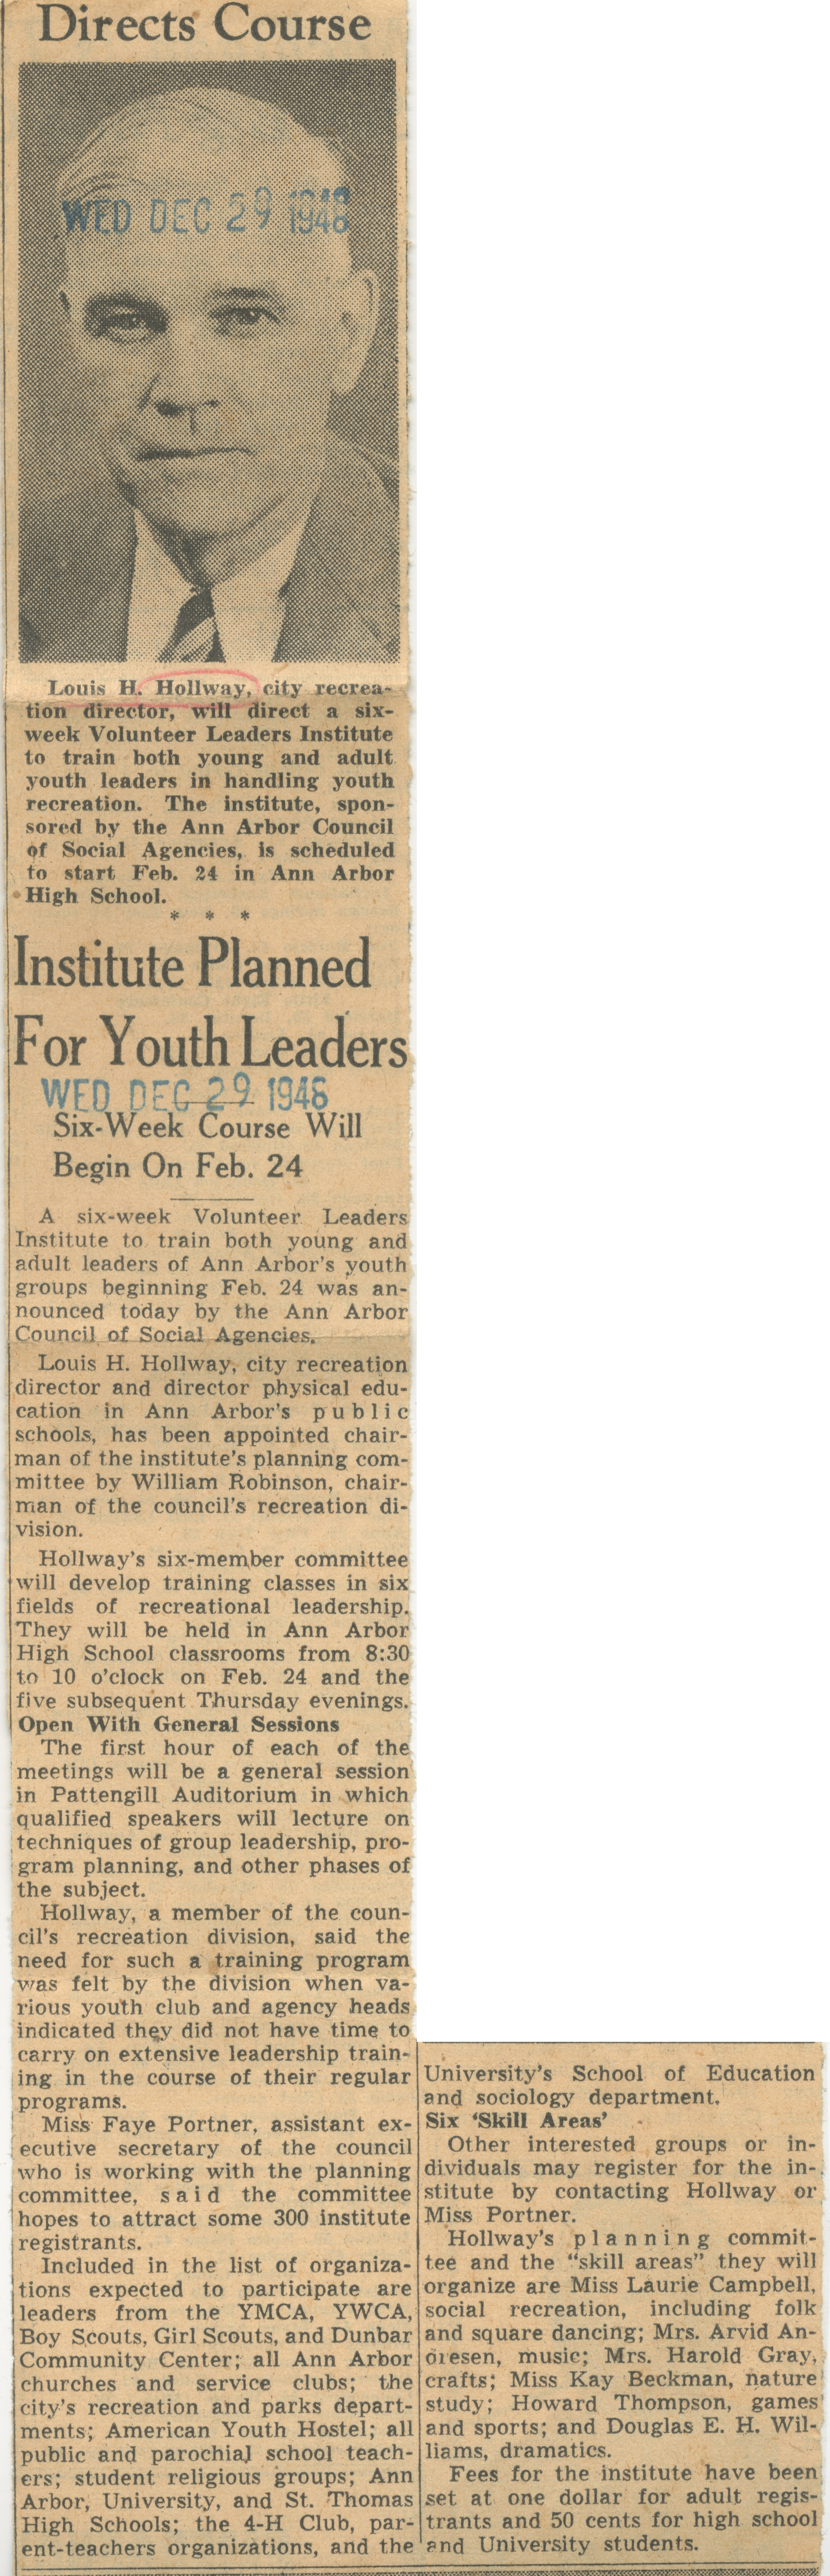 Institute Planned For Youth Leaders image